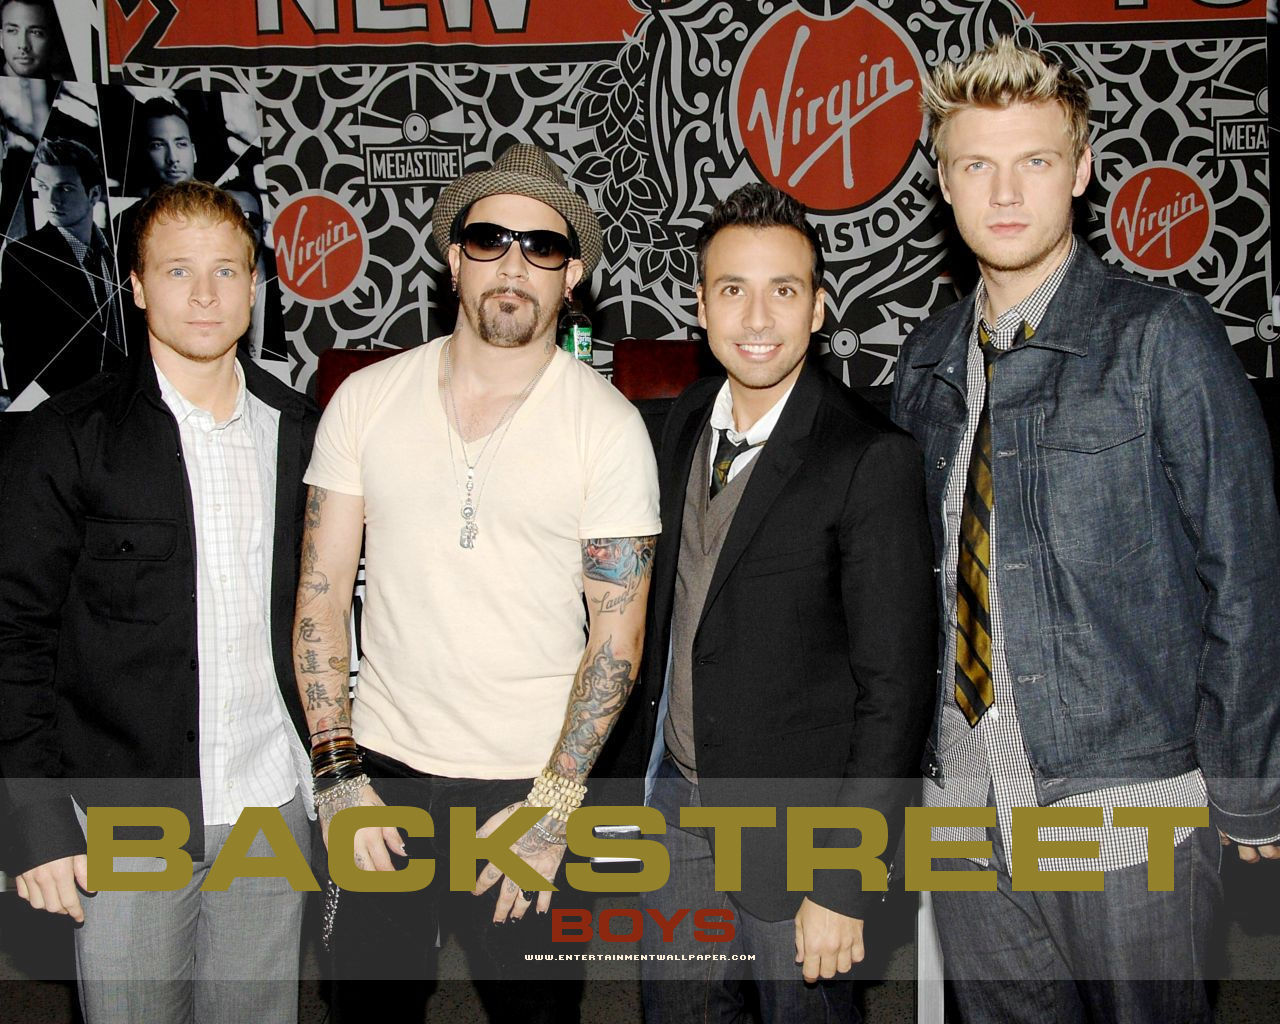 backstreet boys background information origin genres